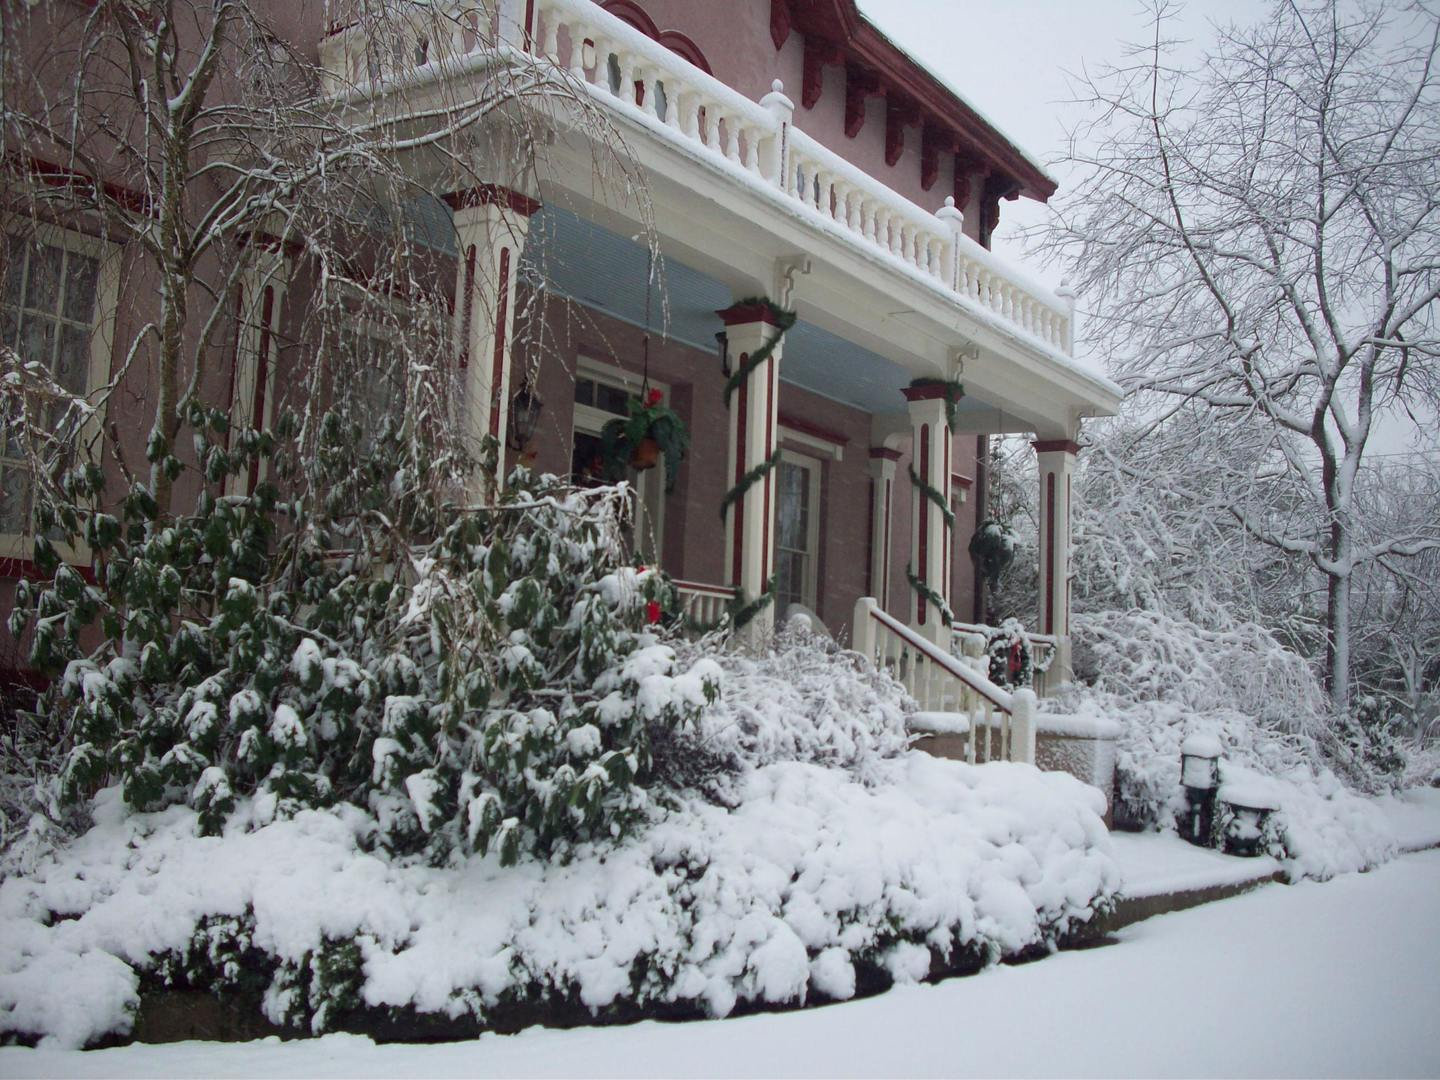 A house covered in snow at Doctor's Inn.